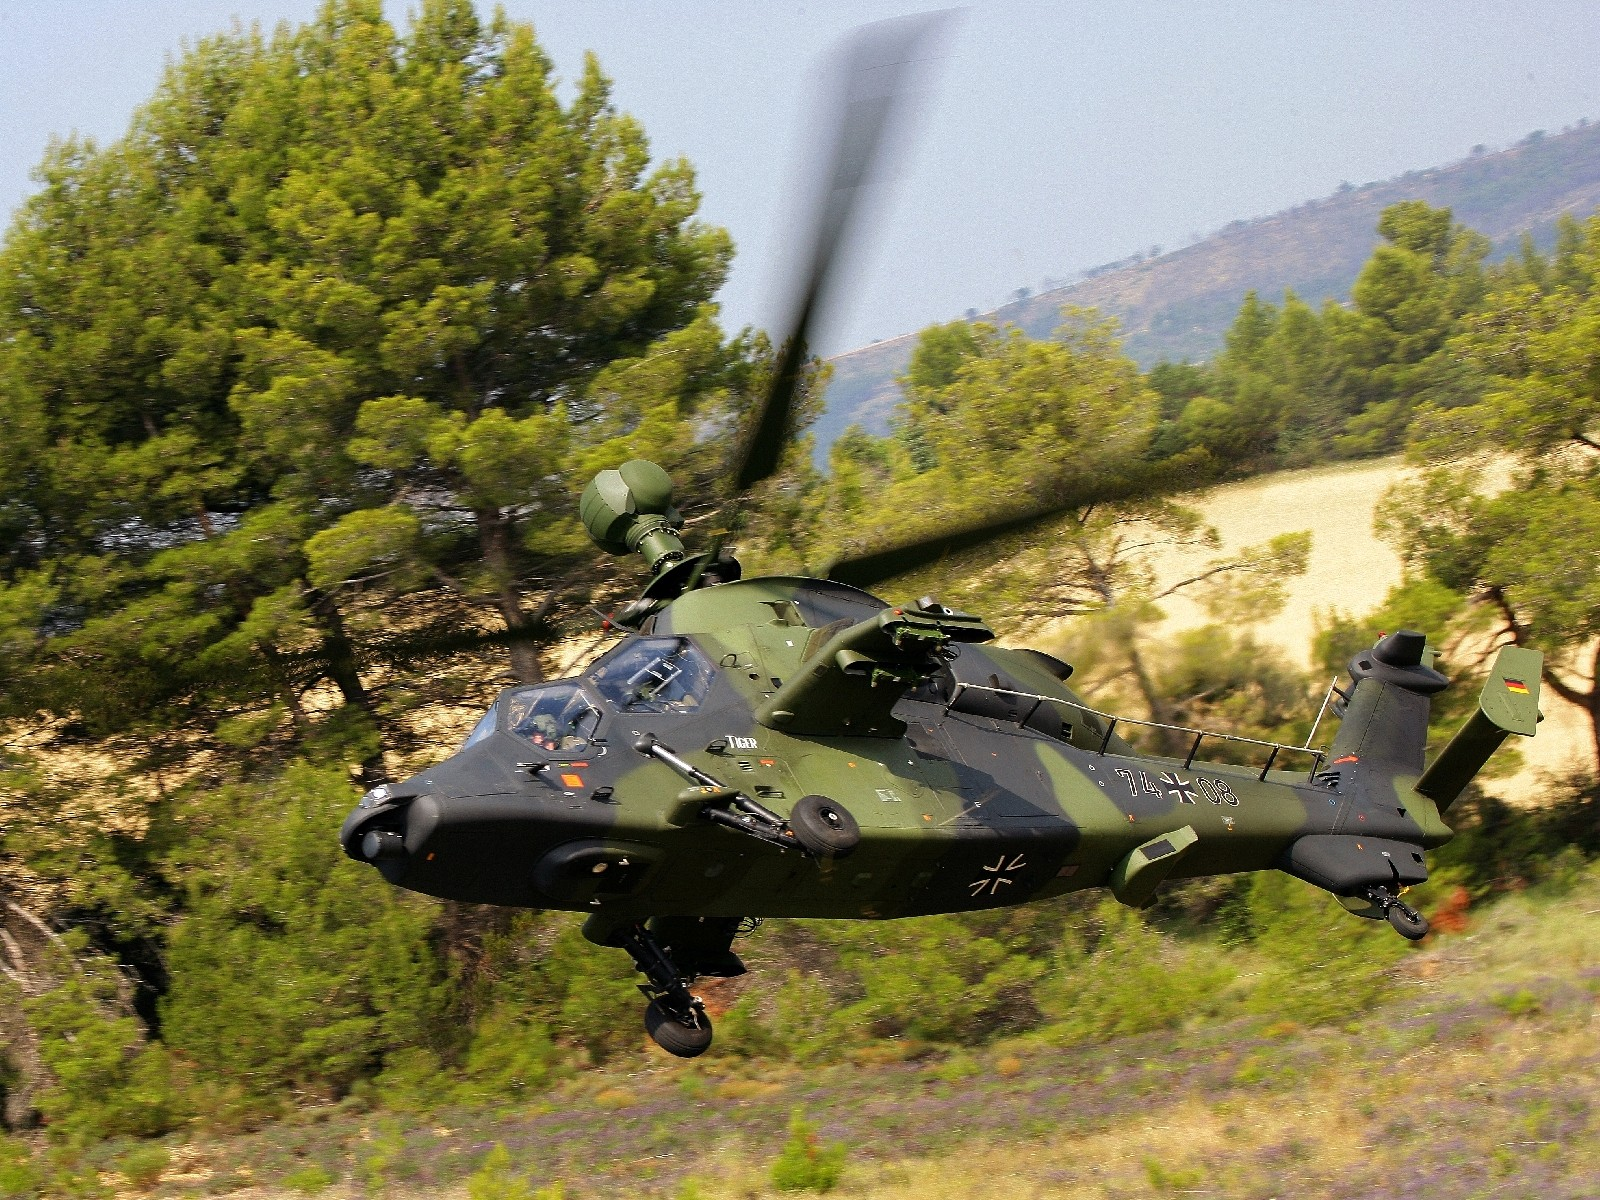 newest army helicopter with By Sub Category on Toufan 2 likewise Watch further Climb Aboard Explore Bristows New Helicopter At Otc 2014 moreover By sub category besides 663167.